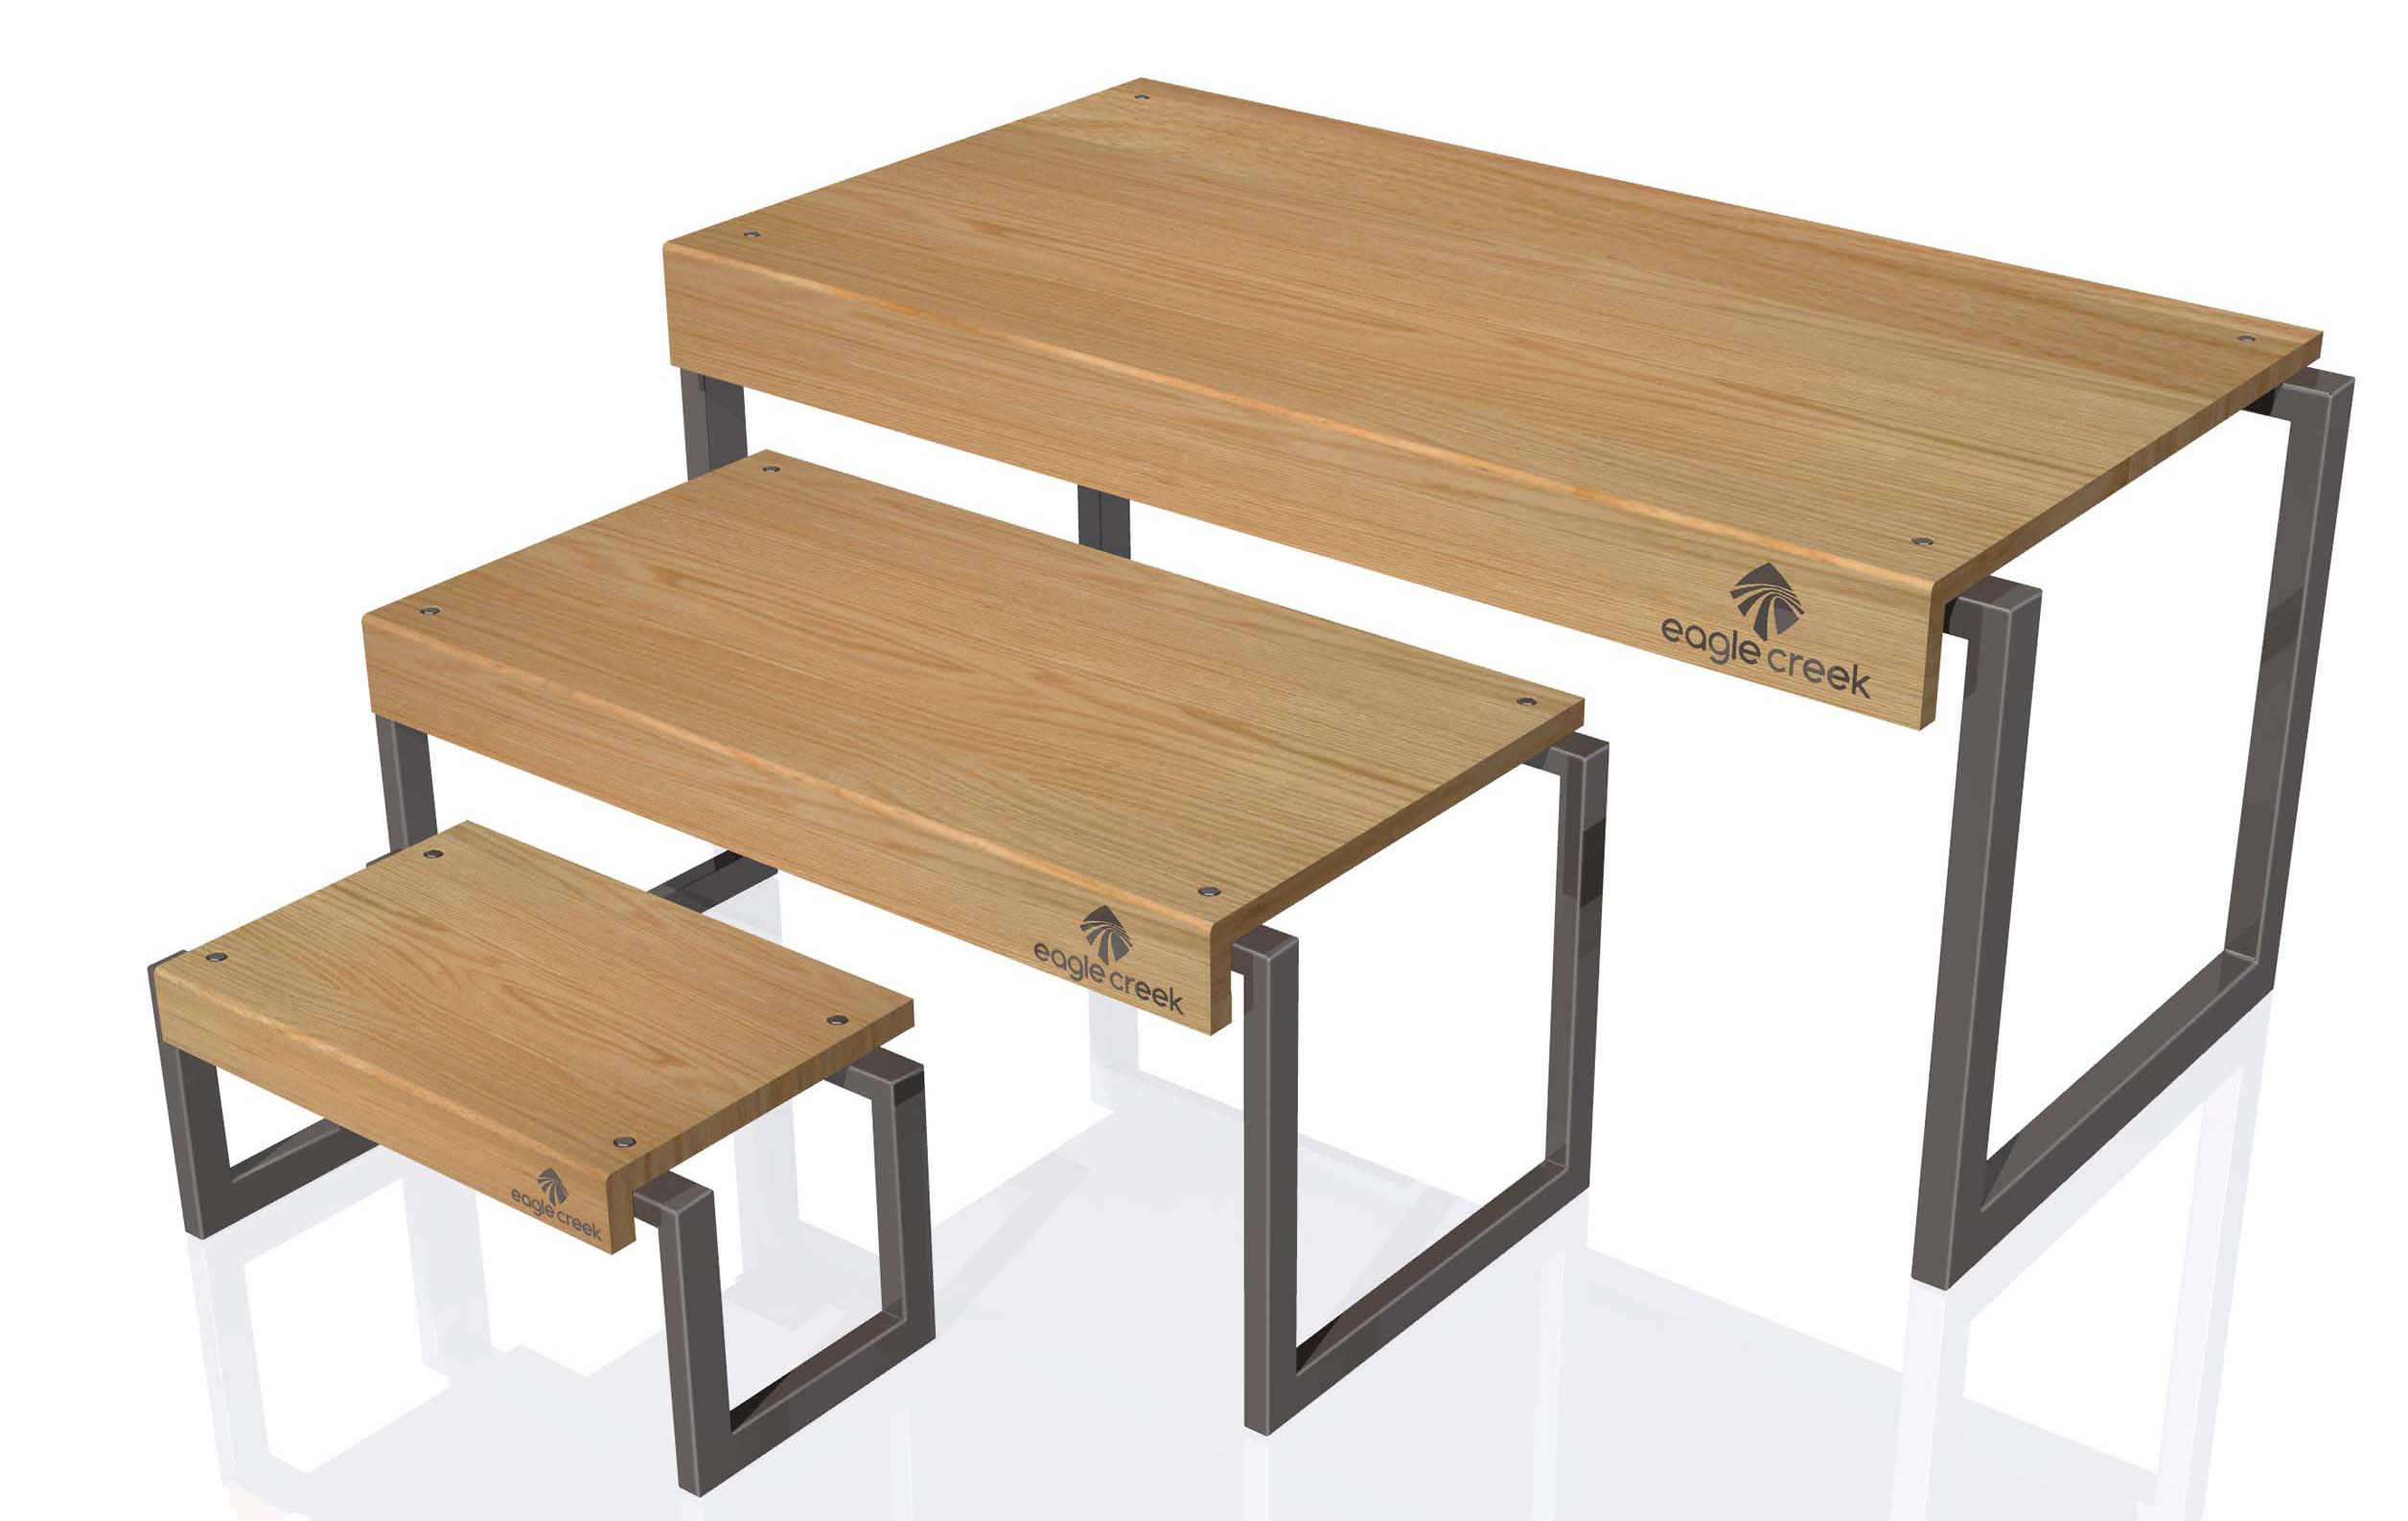 Finally, We Manufactured The Nesting Tables Shown Below For Toys R Us. The  Tall Center Table Was Constructed Of MDF With A Maple Laminate Finish.